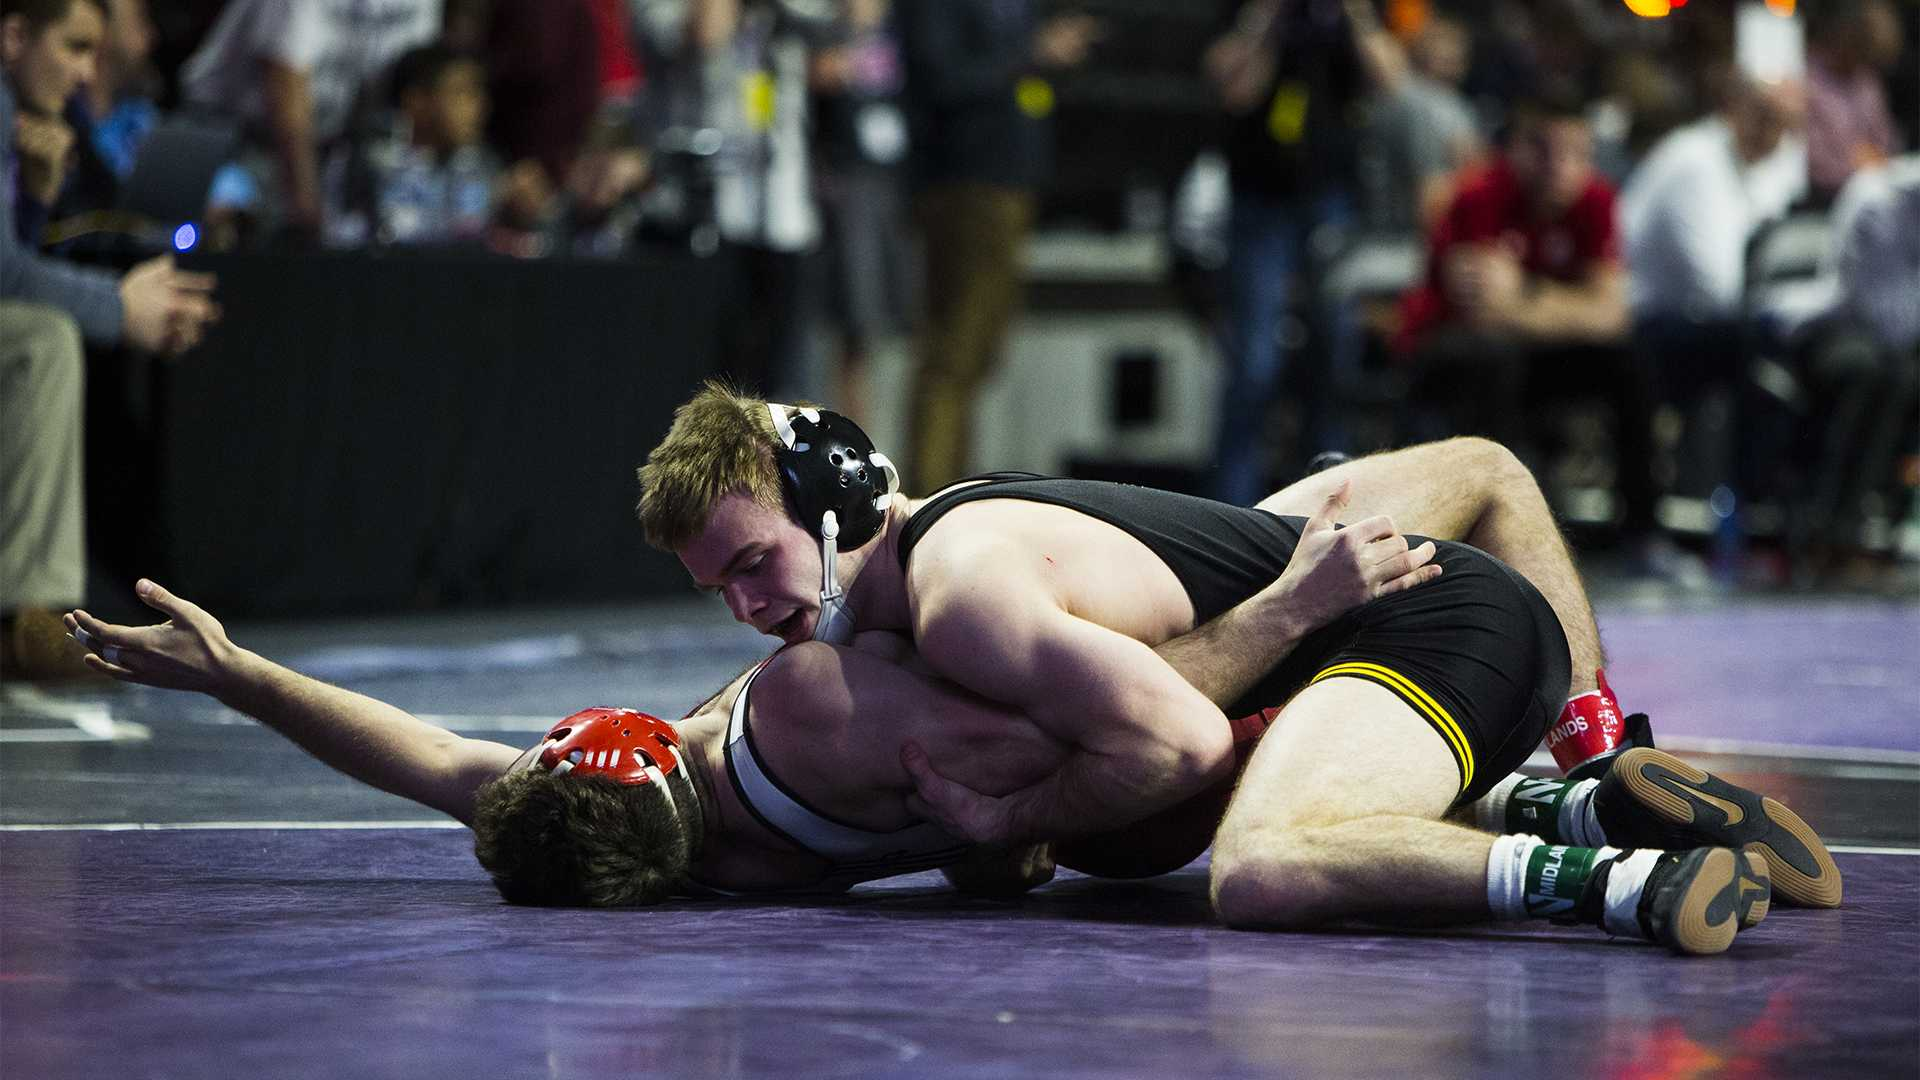 Iowa's 149-pound Brandon Sorensen wrestles Old Dominion's Kevin Budock during the first session of the 55th Annual Midlands Championships in the Sears Centre in Hoffman Estates, Illinois, on Friday, Dec. 29, 2017. (Joseph Cress/The Daily Iowan)